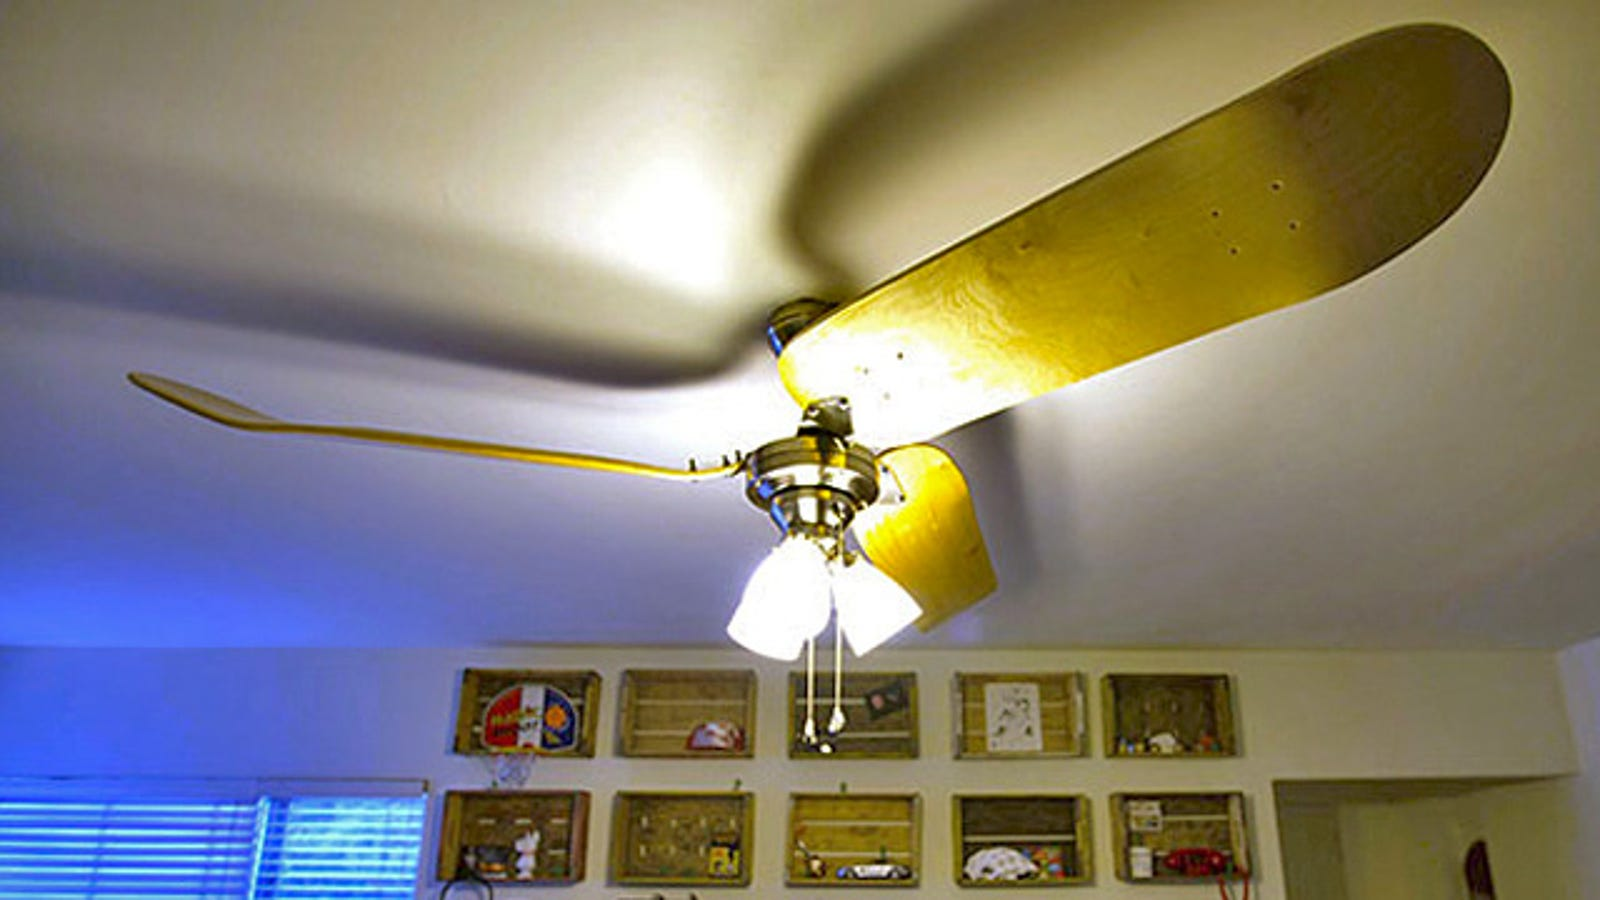 This Skateboard Ceiling Fan Does 900s